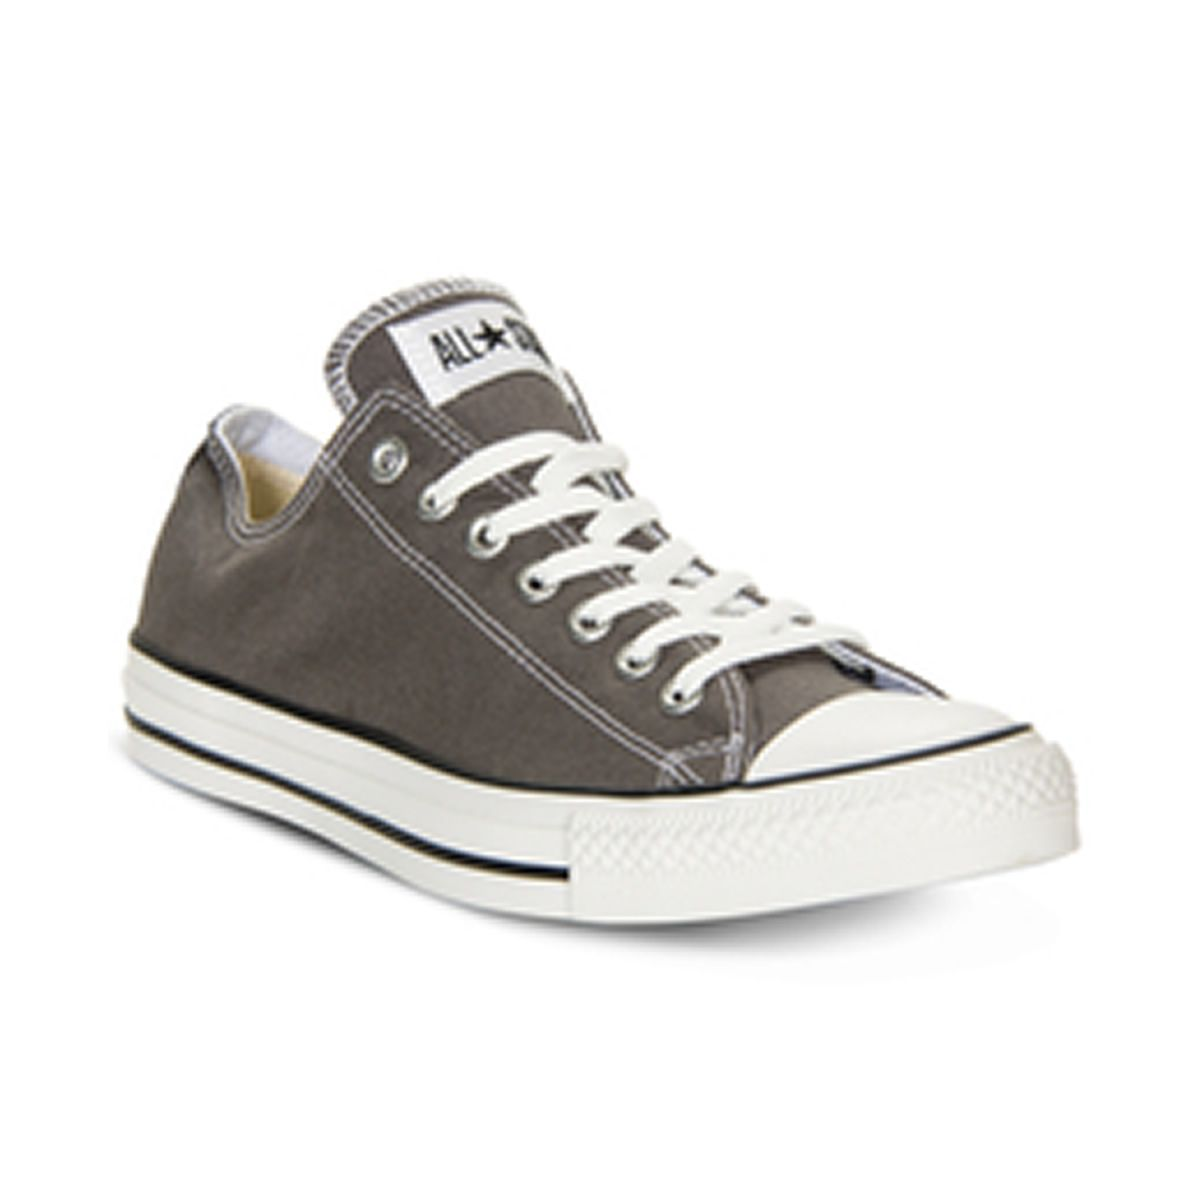 6388a6c6a674 Converse Finish Line Shoes for Men - Macy s